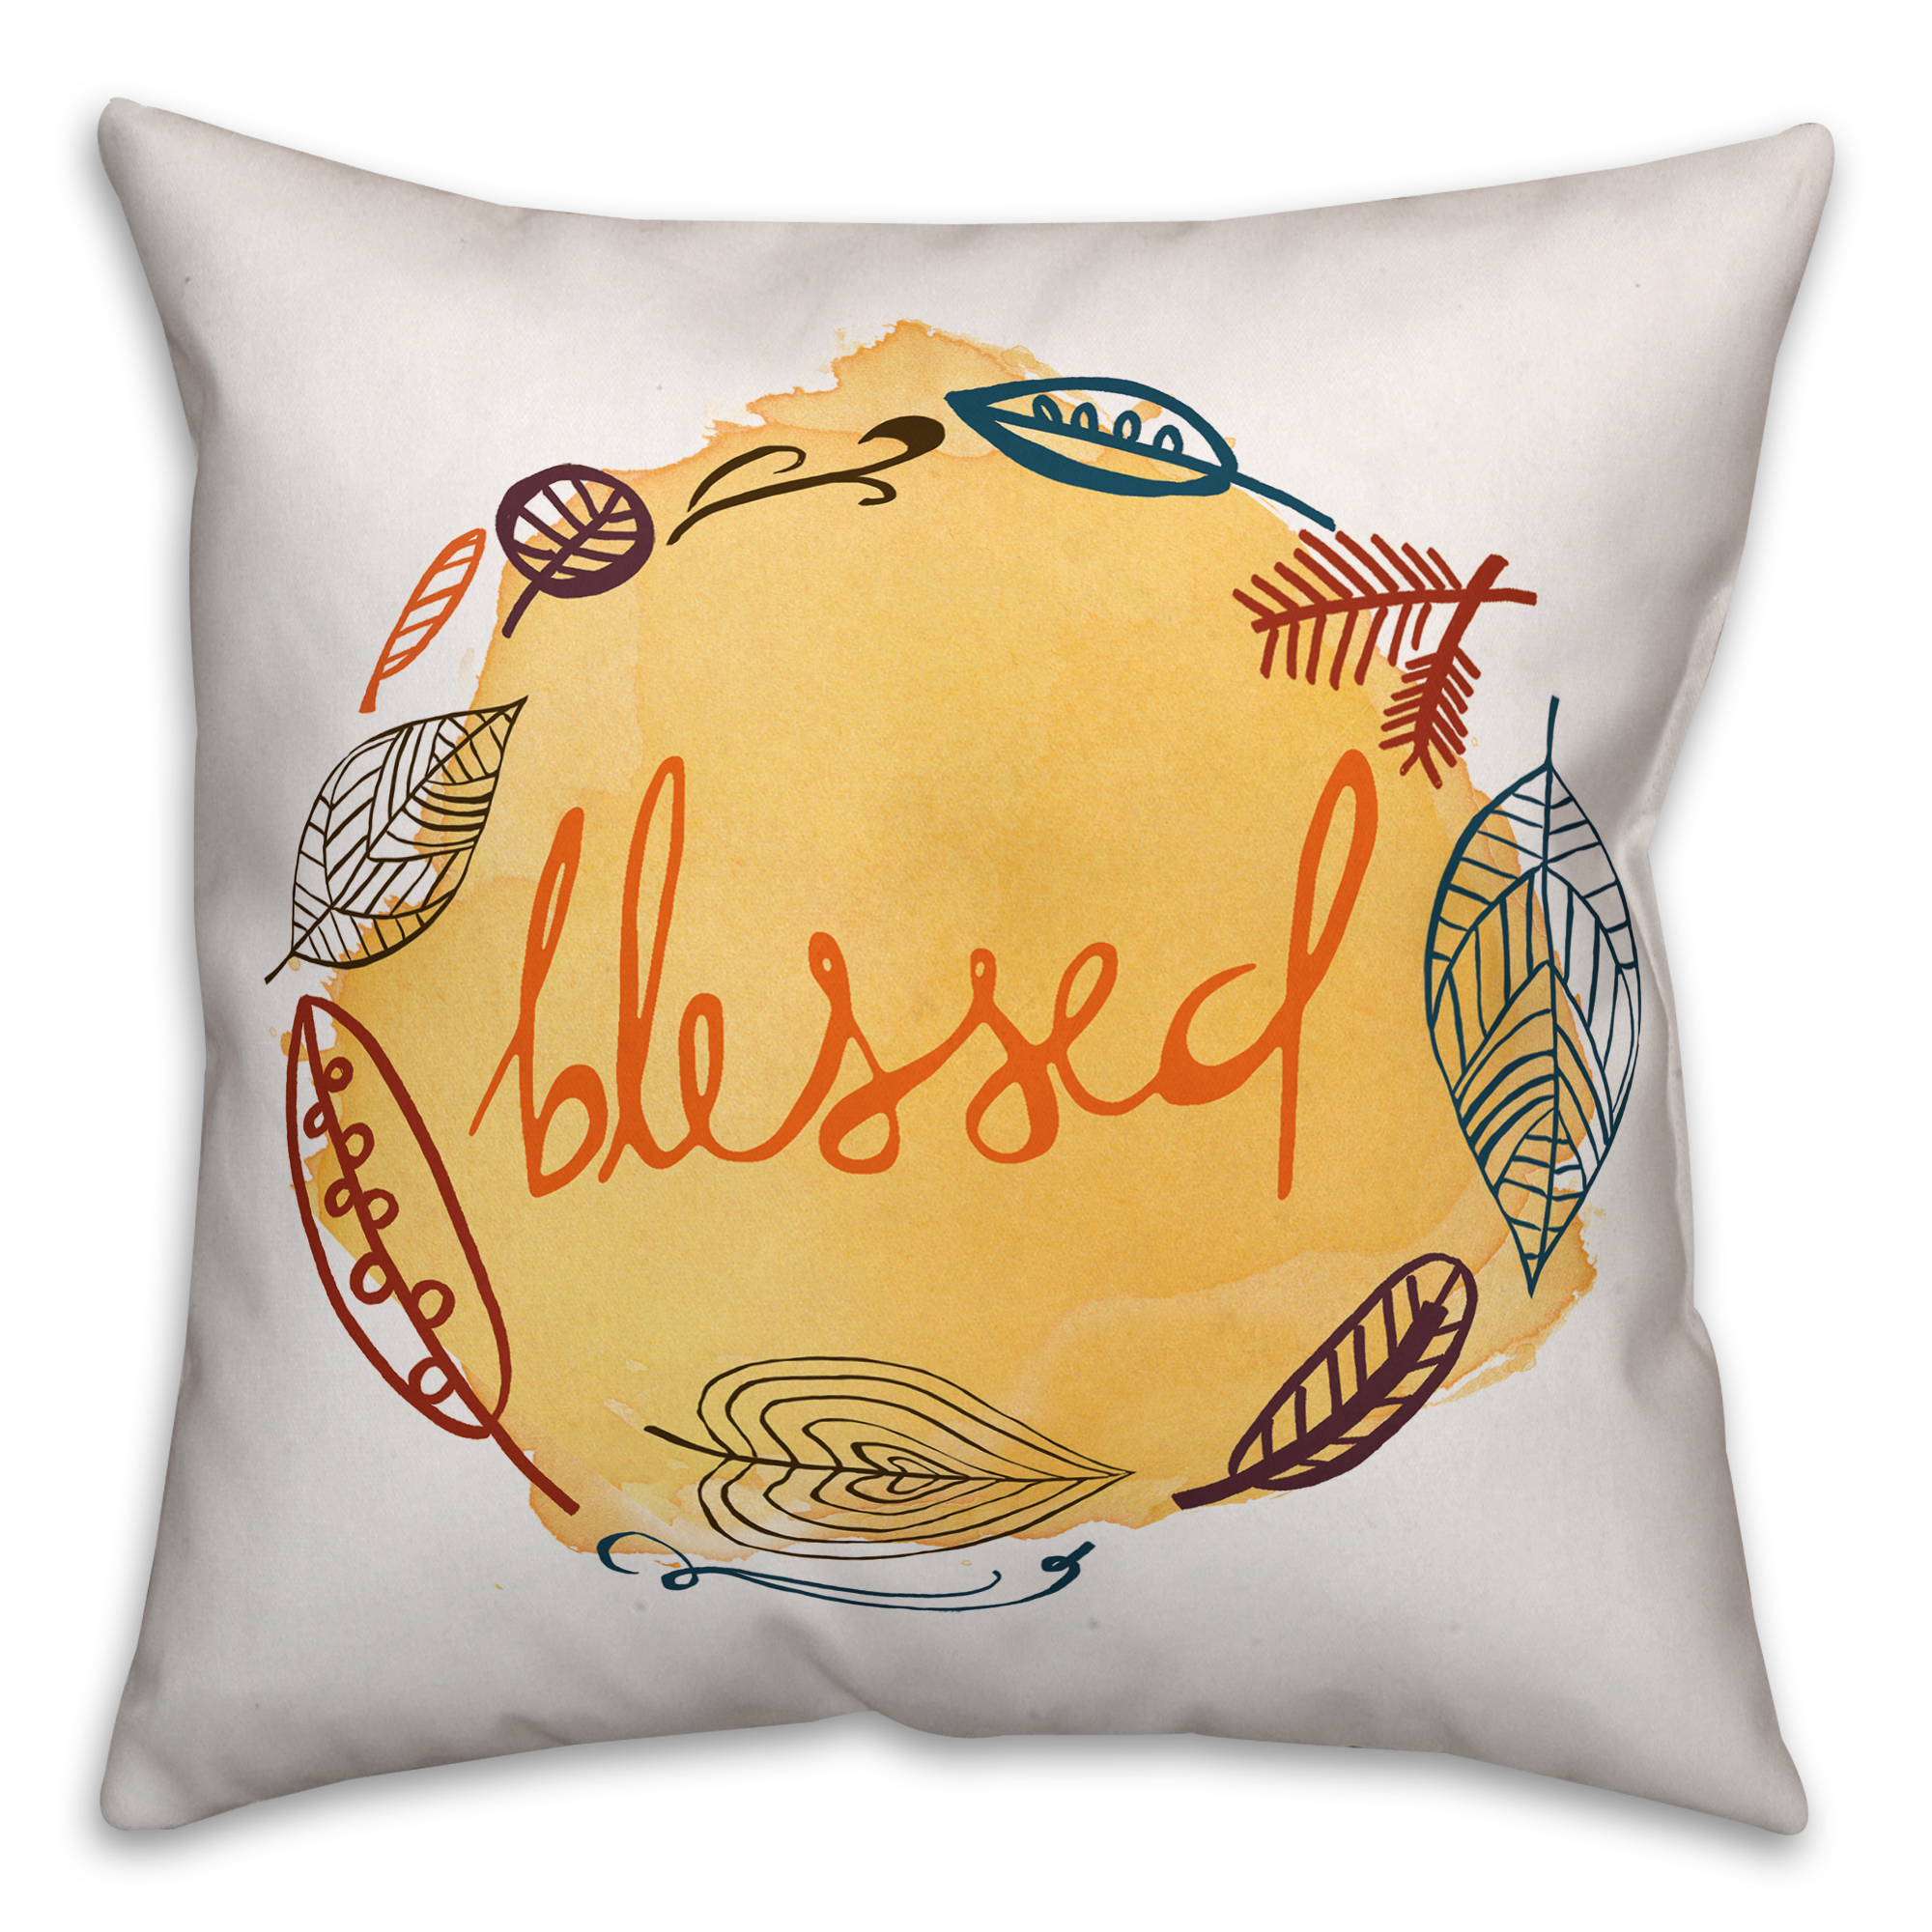 Harvest Blessed 16x16 Spun Poly Pillow